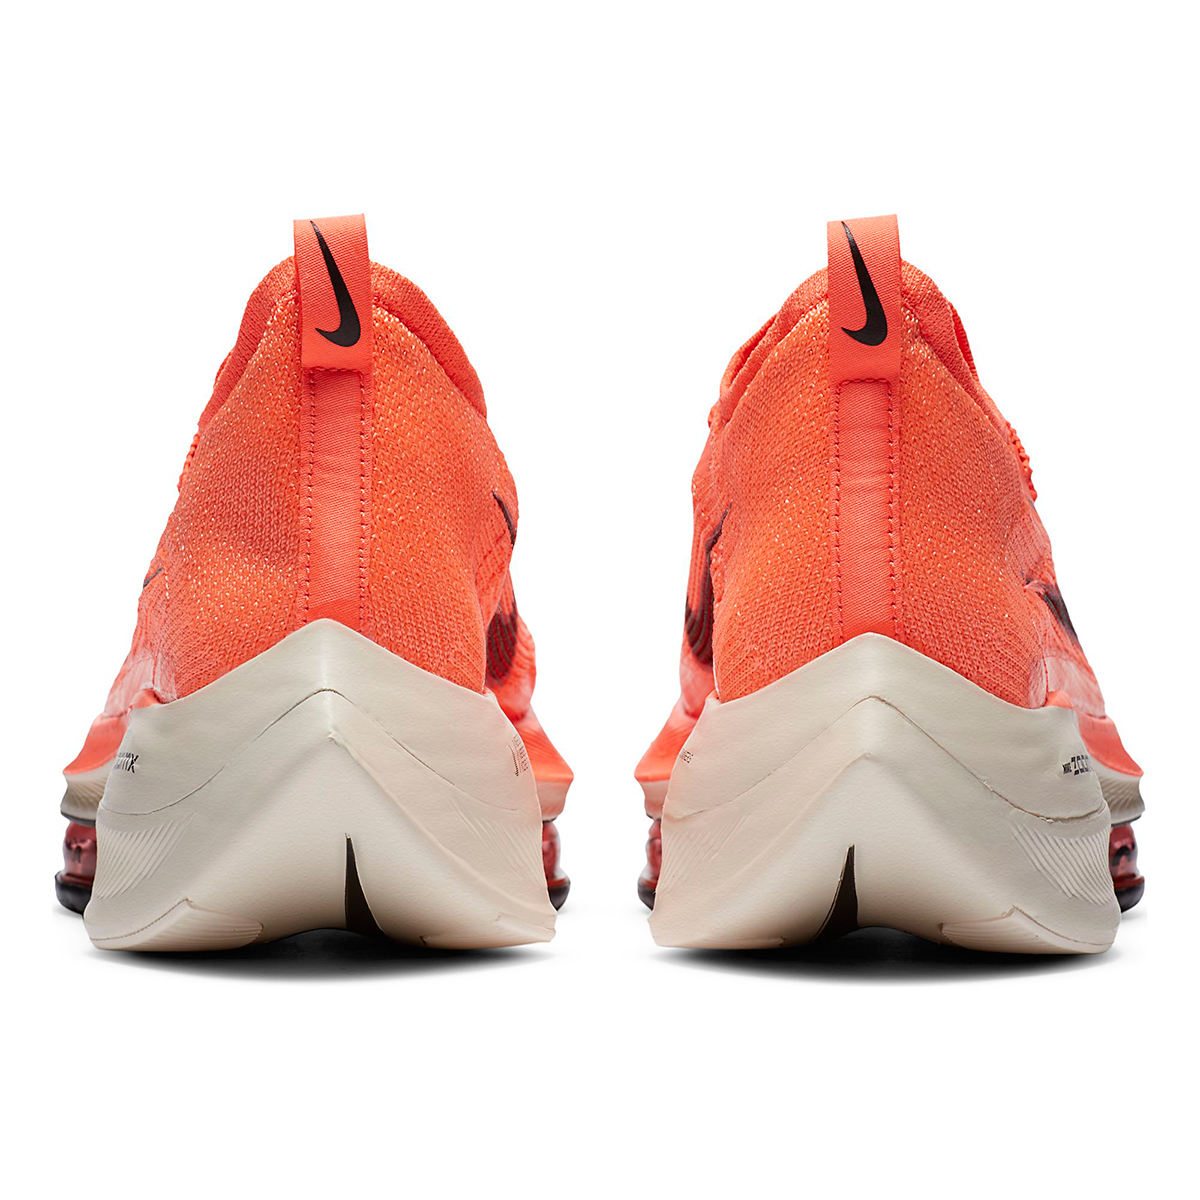 Men's Nike Air Zoom Alphafly NEXT% Running Shoe - Color: Bright Mango/Citron Pulse - Size: 6 - Width: Regular, Bright Mango/Citron Pulse, large, image 4